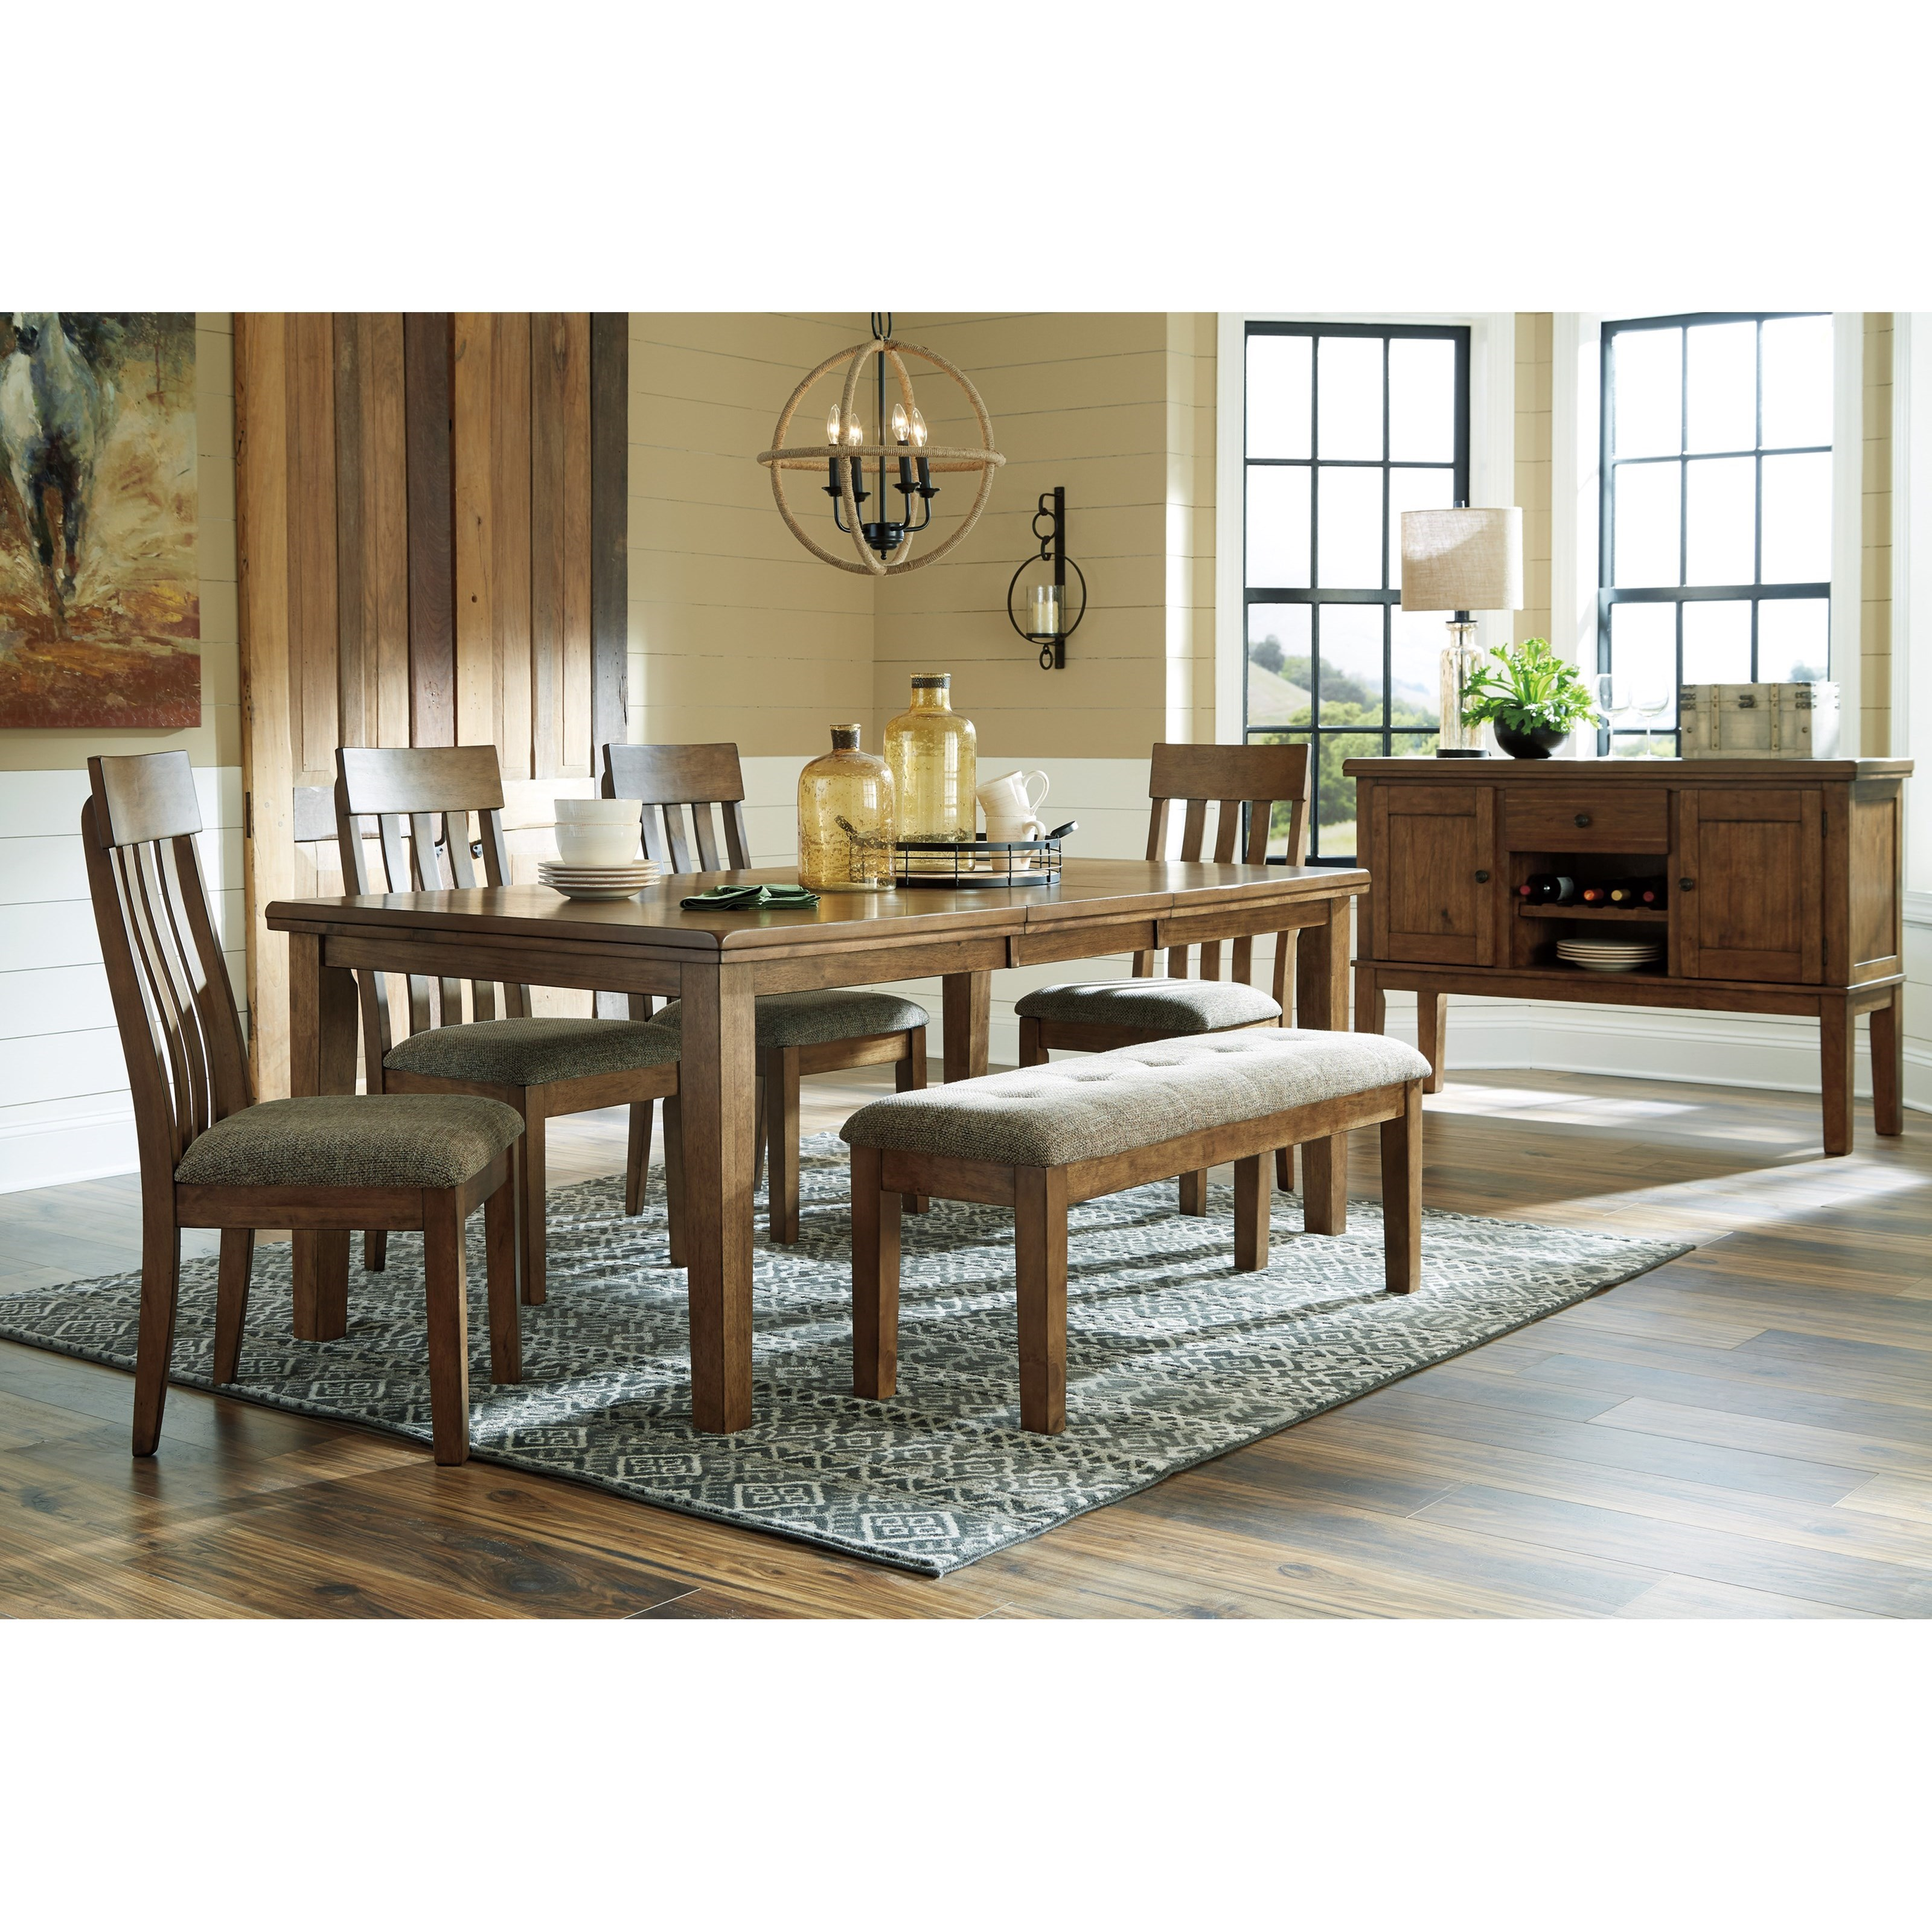 Flaybern Formal Dining Room Group by Benchcraft at Northeast Factory Direct